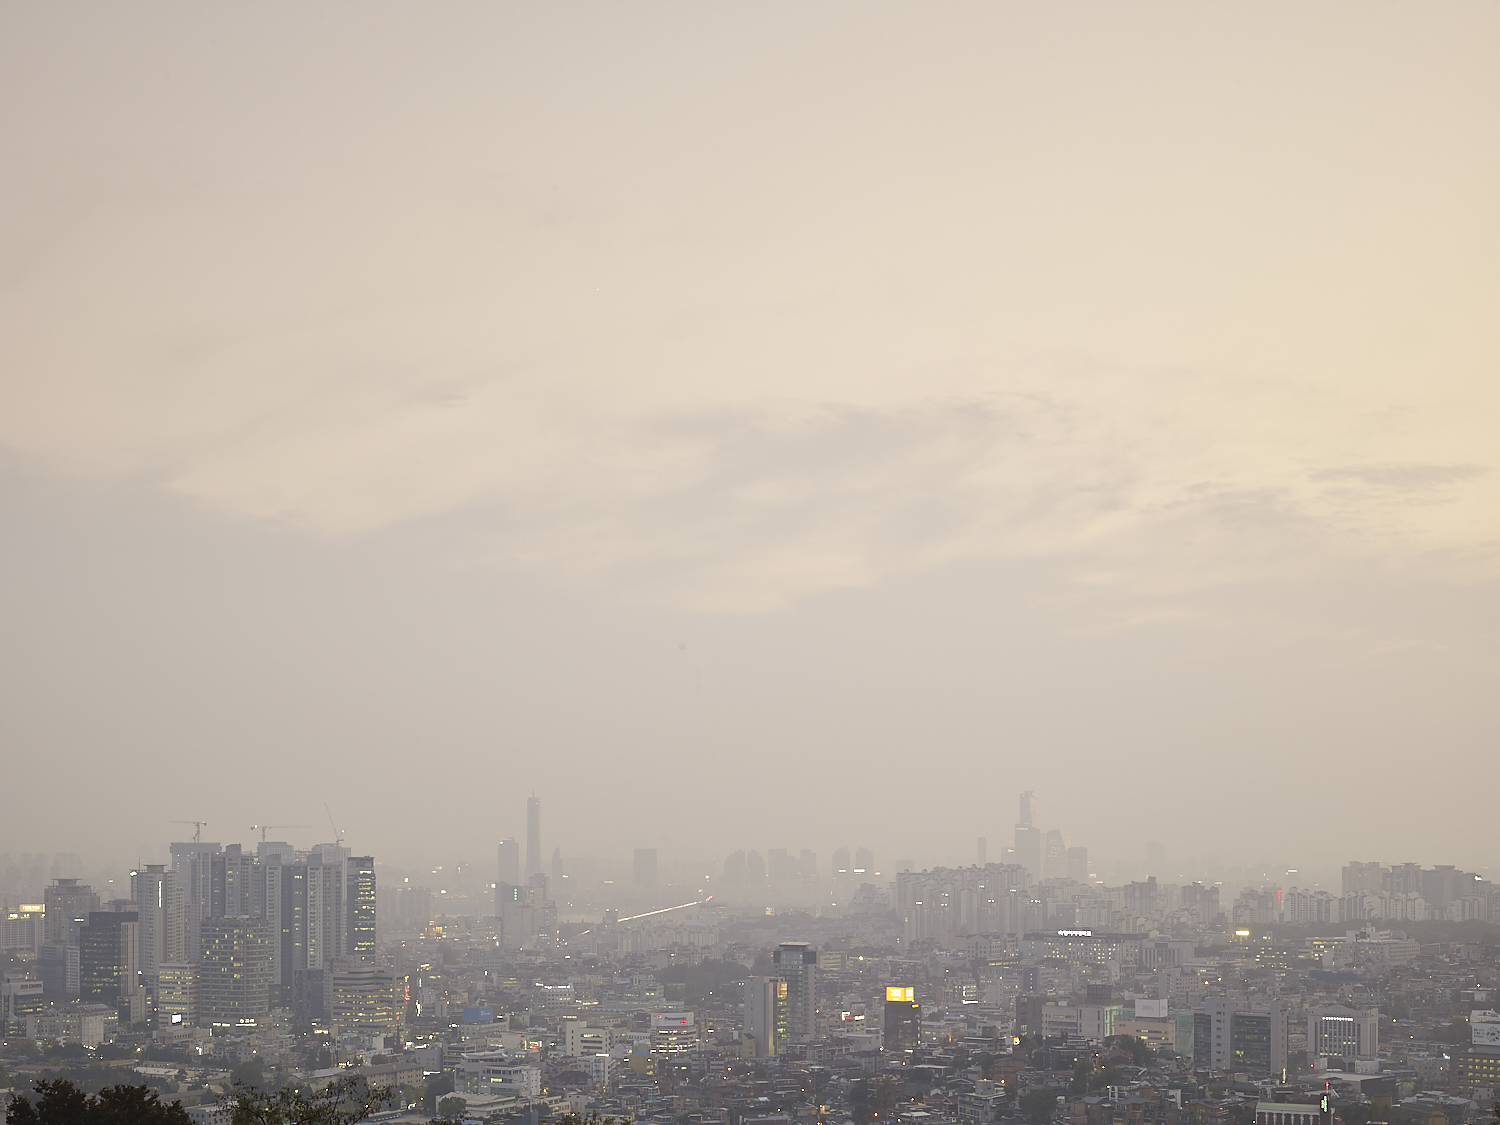 Seoul view from Namsan Park, Seoul, South Korea, 2016